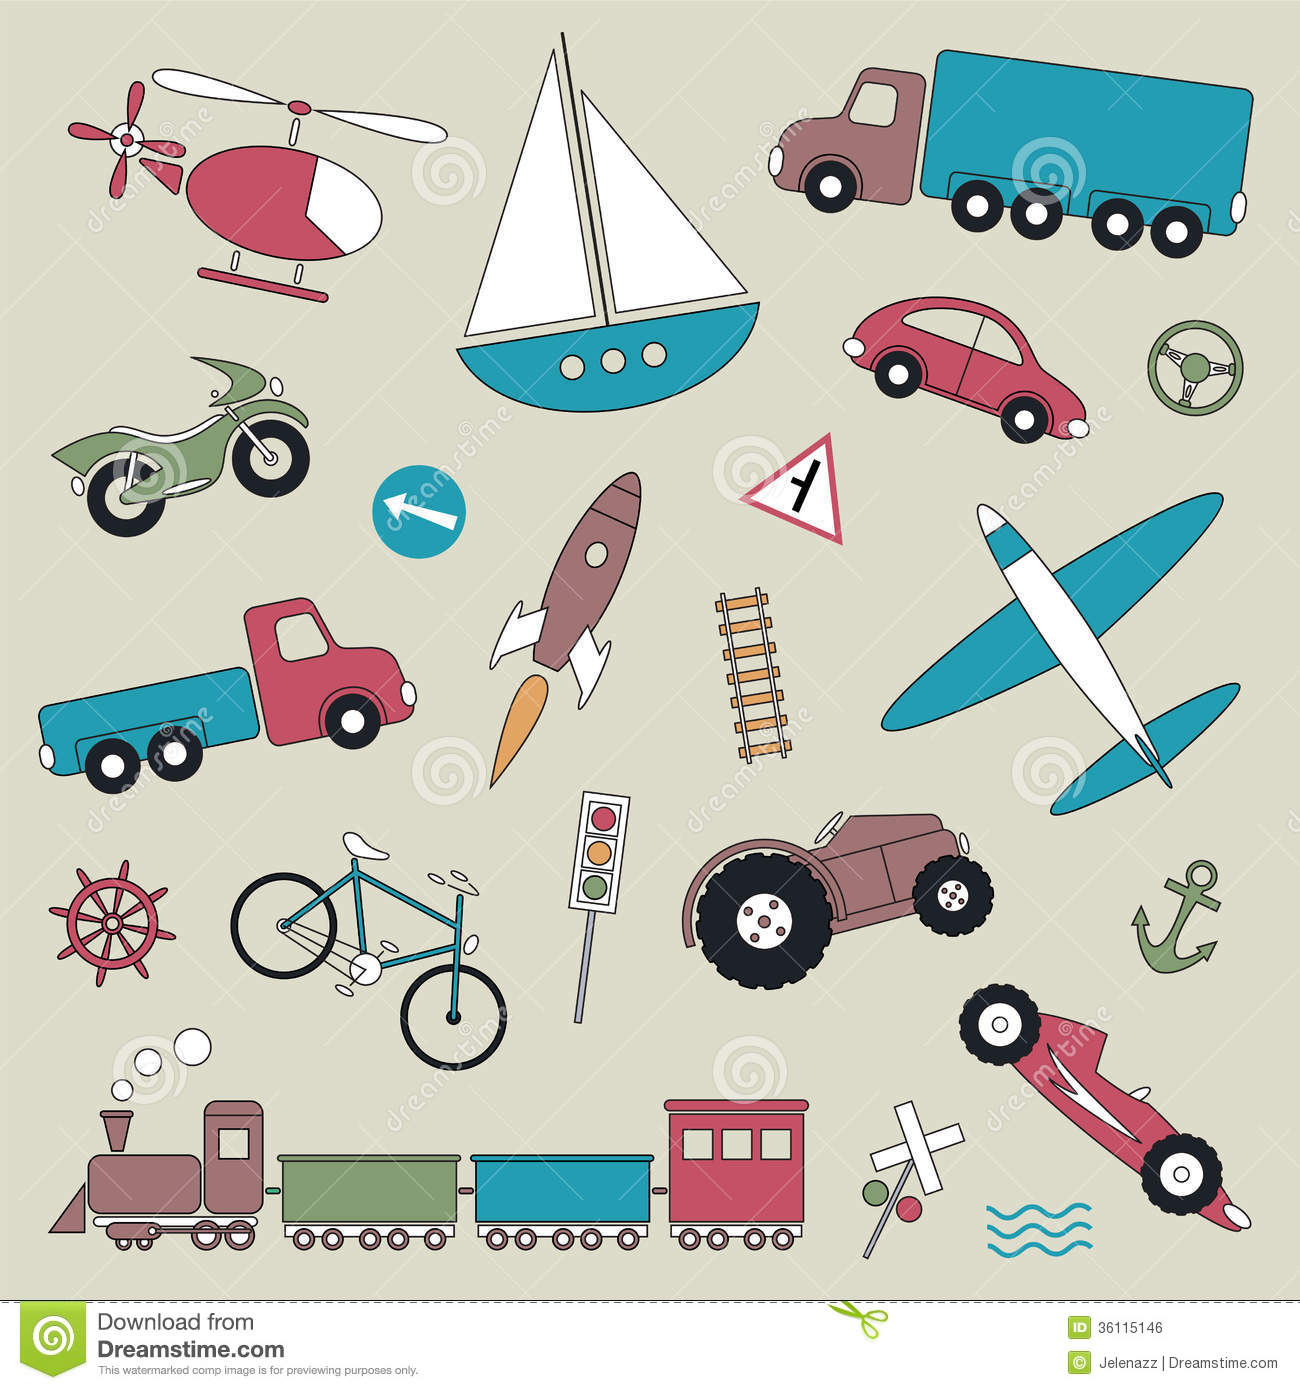 Street Dreams Auto >> Transportation Vehicles Collection Illustration Stock Vector - Image: 36115146